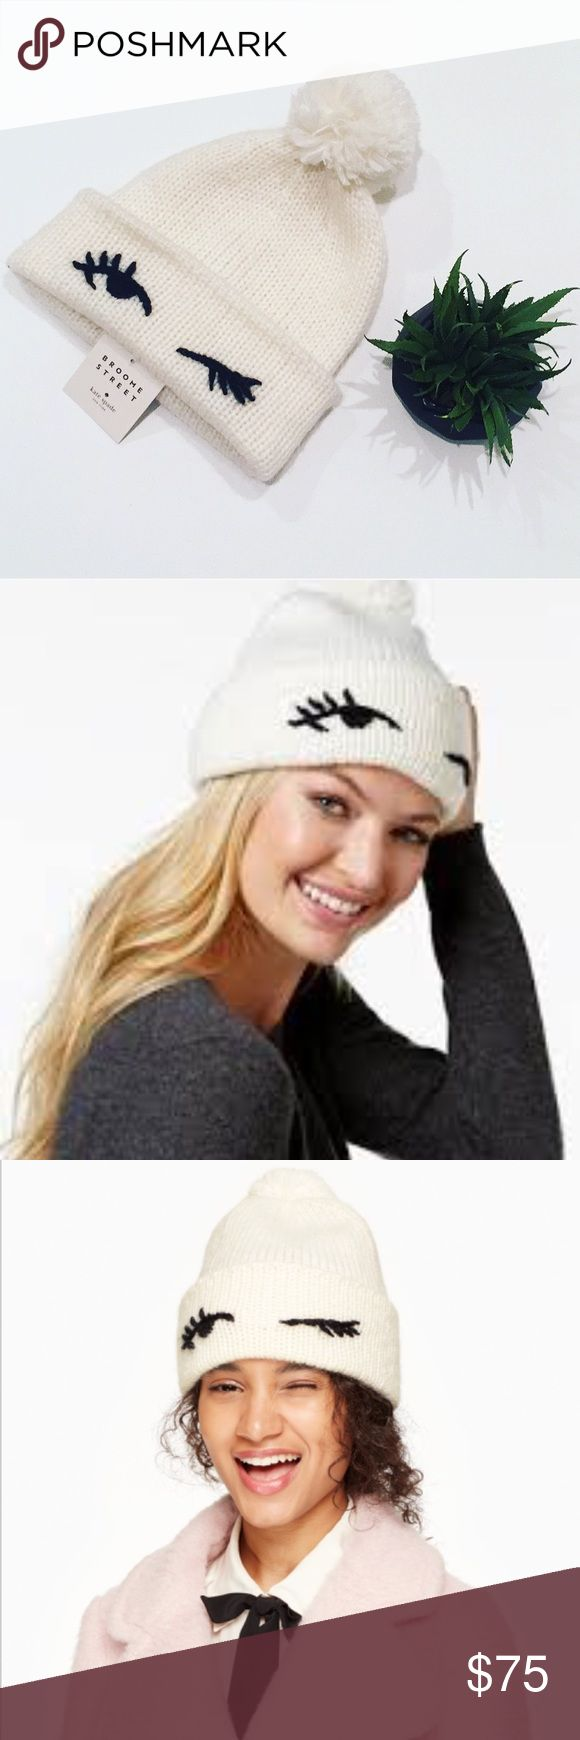 "NWTs Kate Spade winking beanie eyes up here: this adorable knit beanie is finished with a wink, resulting in a stylish cap that's as witty as it is warm. MATERIAL 80% acrylic 10% wool 10% mohair SIZE 10"" w x 10"" l style # ks1000748 No trades  Firm unless Bundled kate spade Accessories Hats"